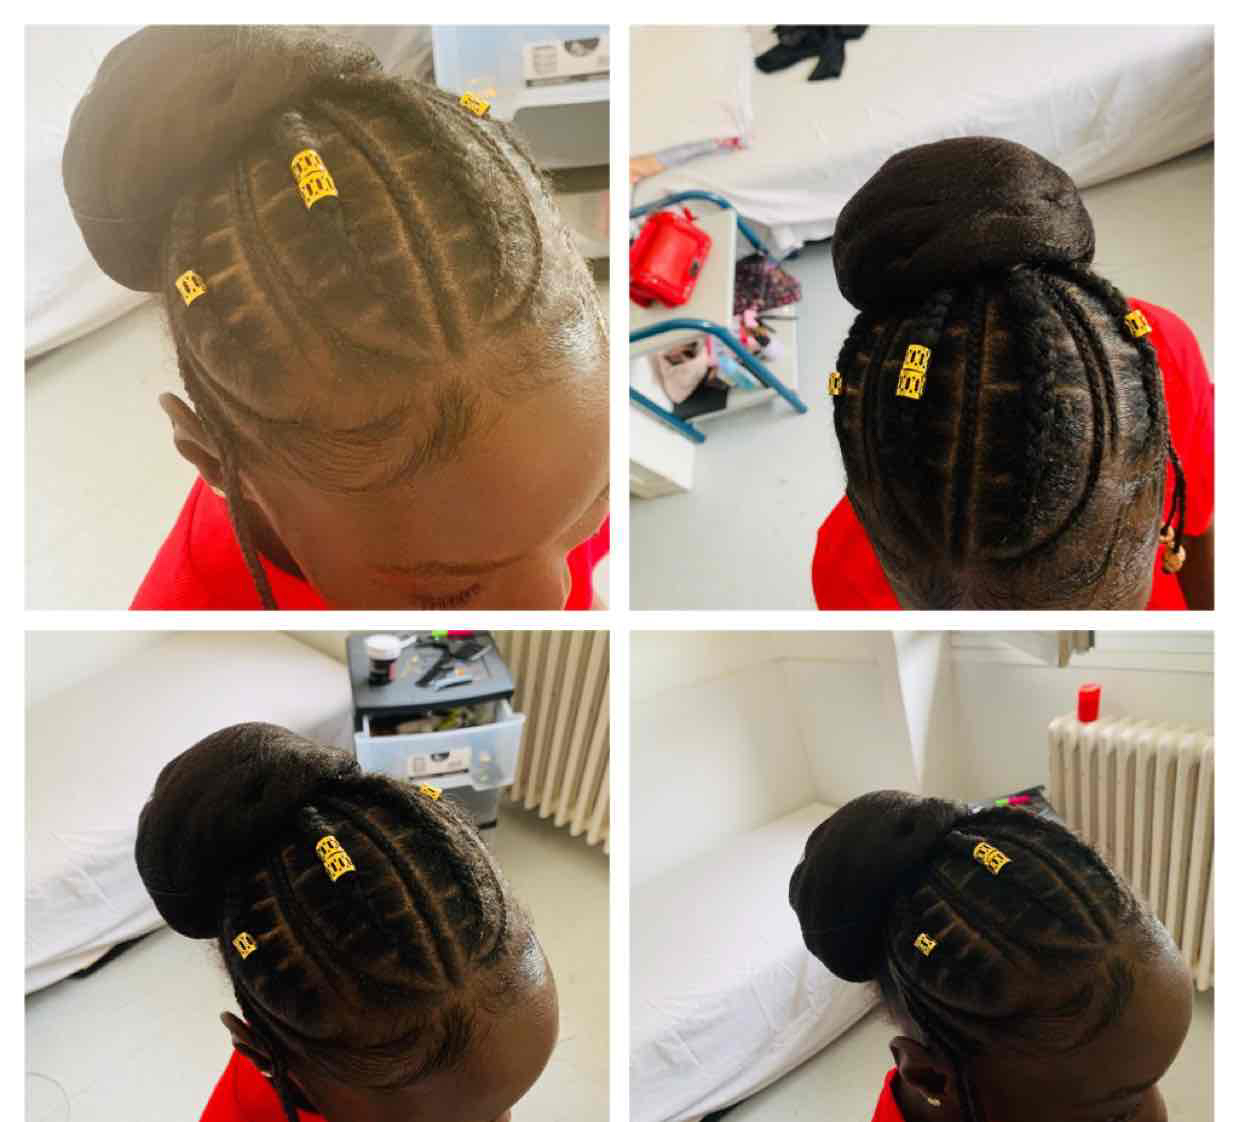 salon de coiffure afro tresse tresses box braids crochet braids vanilles tissages paris 75 77 78 91 92 93 94 95 RCHENSKJ